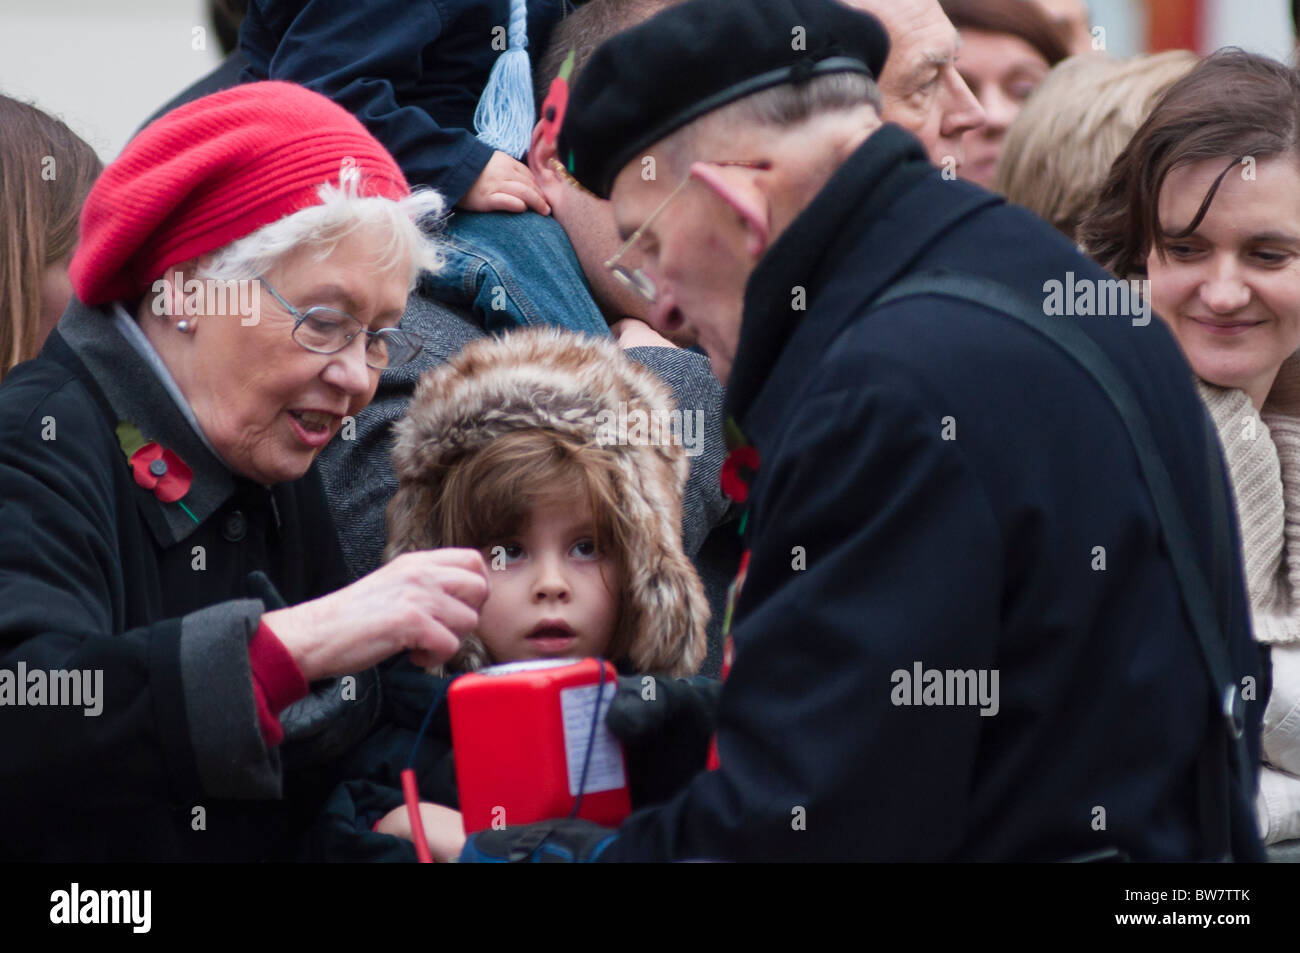 Old lady buys a poppy during the Lord Mayor's parade in London 2010. - Stock Image